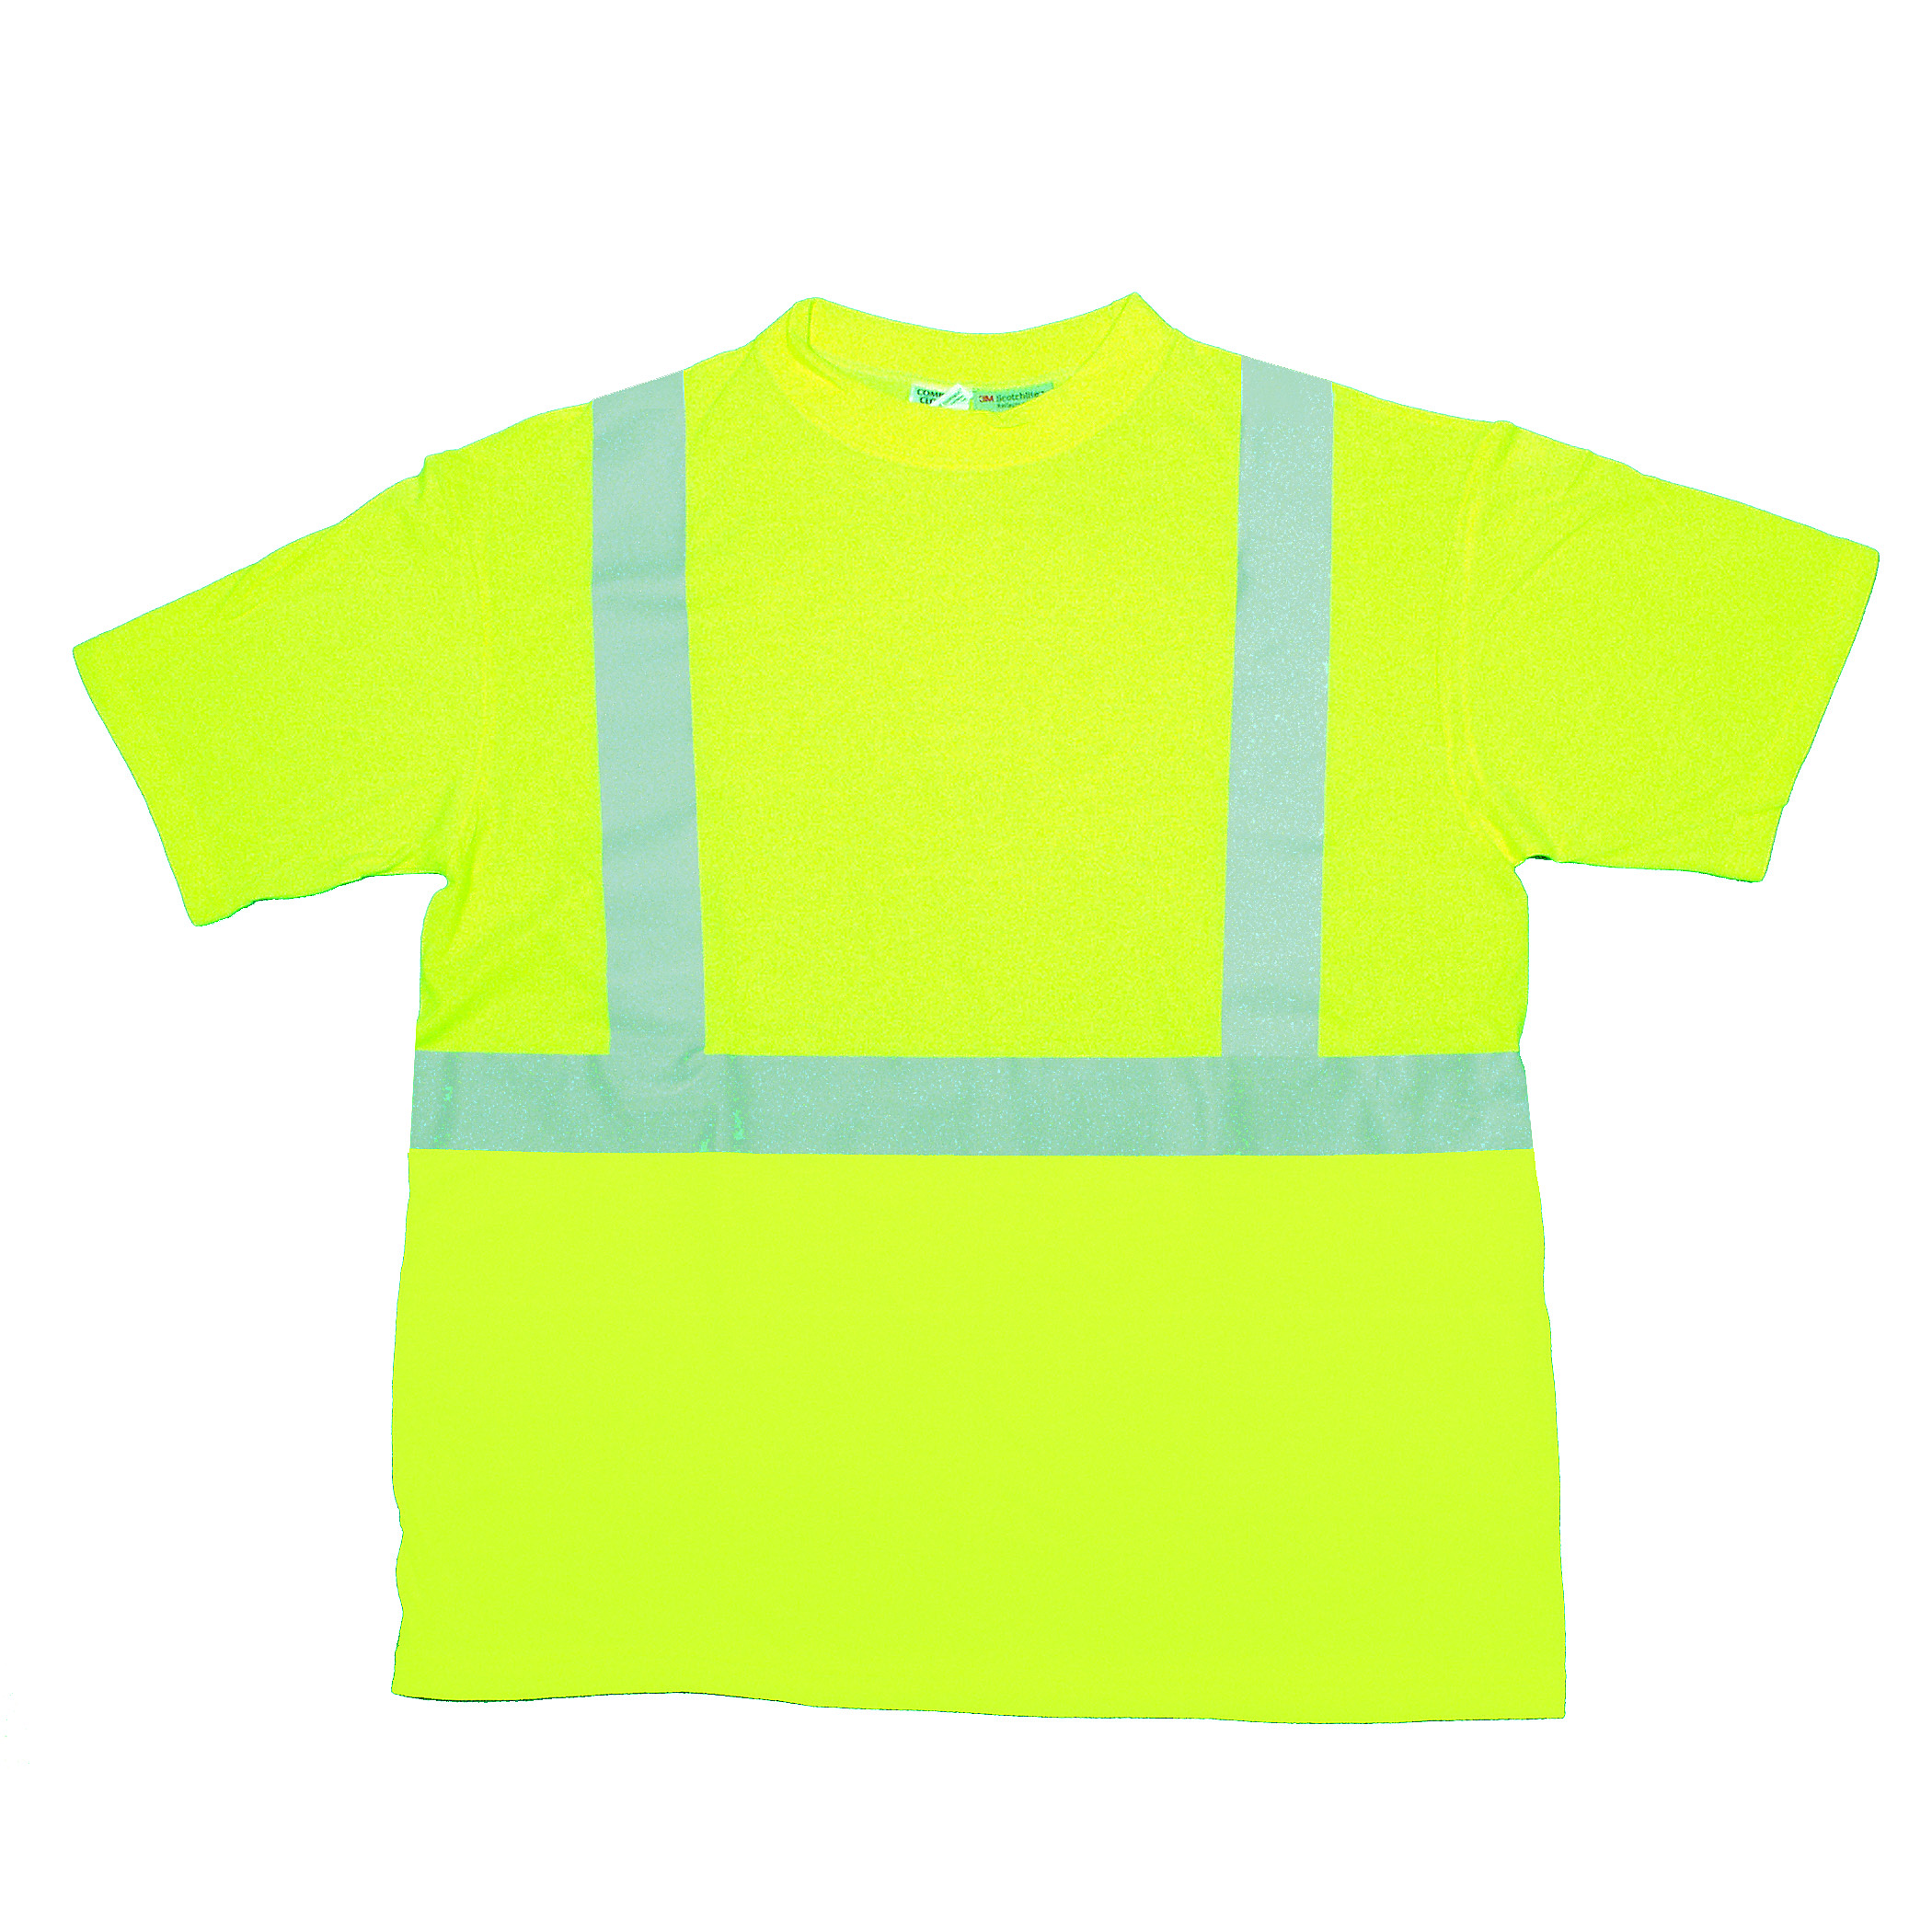 96001-0-105, ANSI Class 2 Durable Flame Retardant T-Shirt, Lime, 2XLarge, Mutual Industries